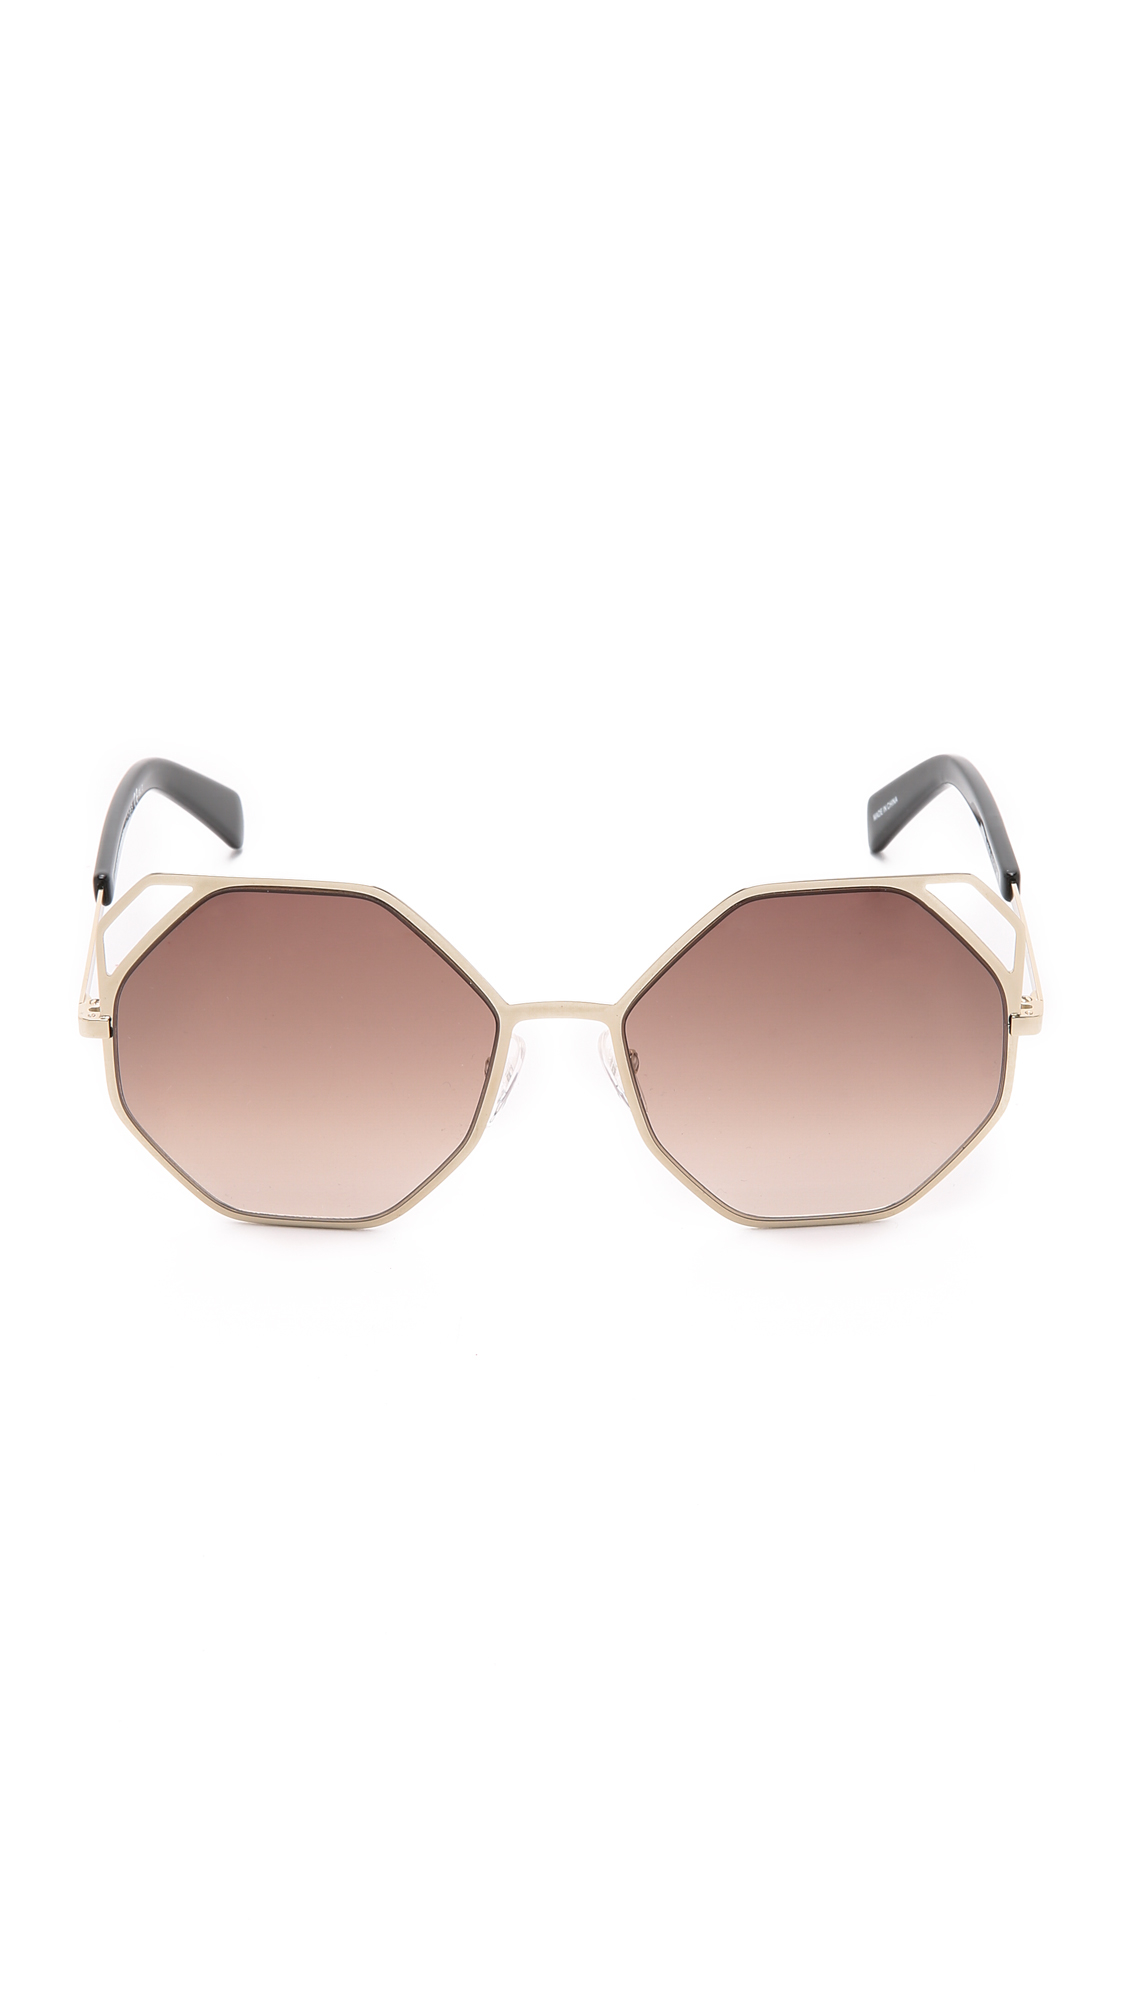 Geometric Sunglasses  marc by marc jacobs geometric sunglasses gold brown grant in